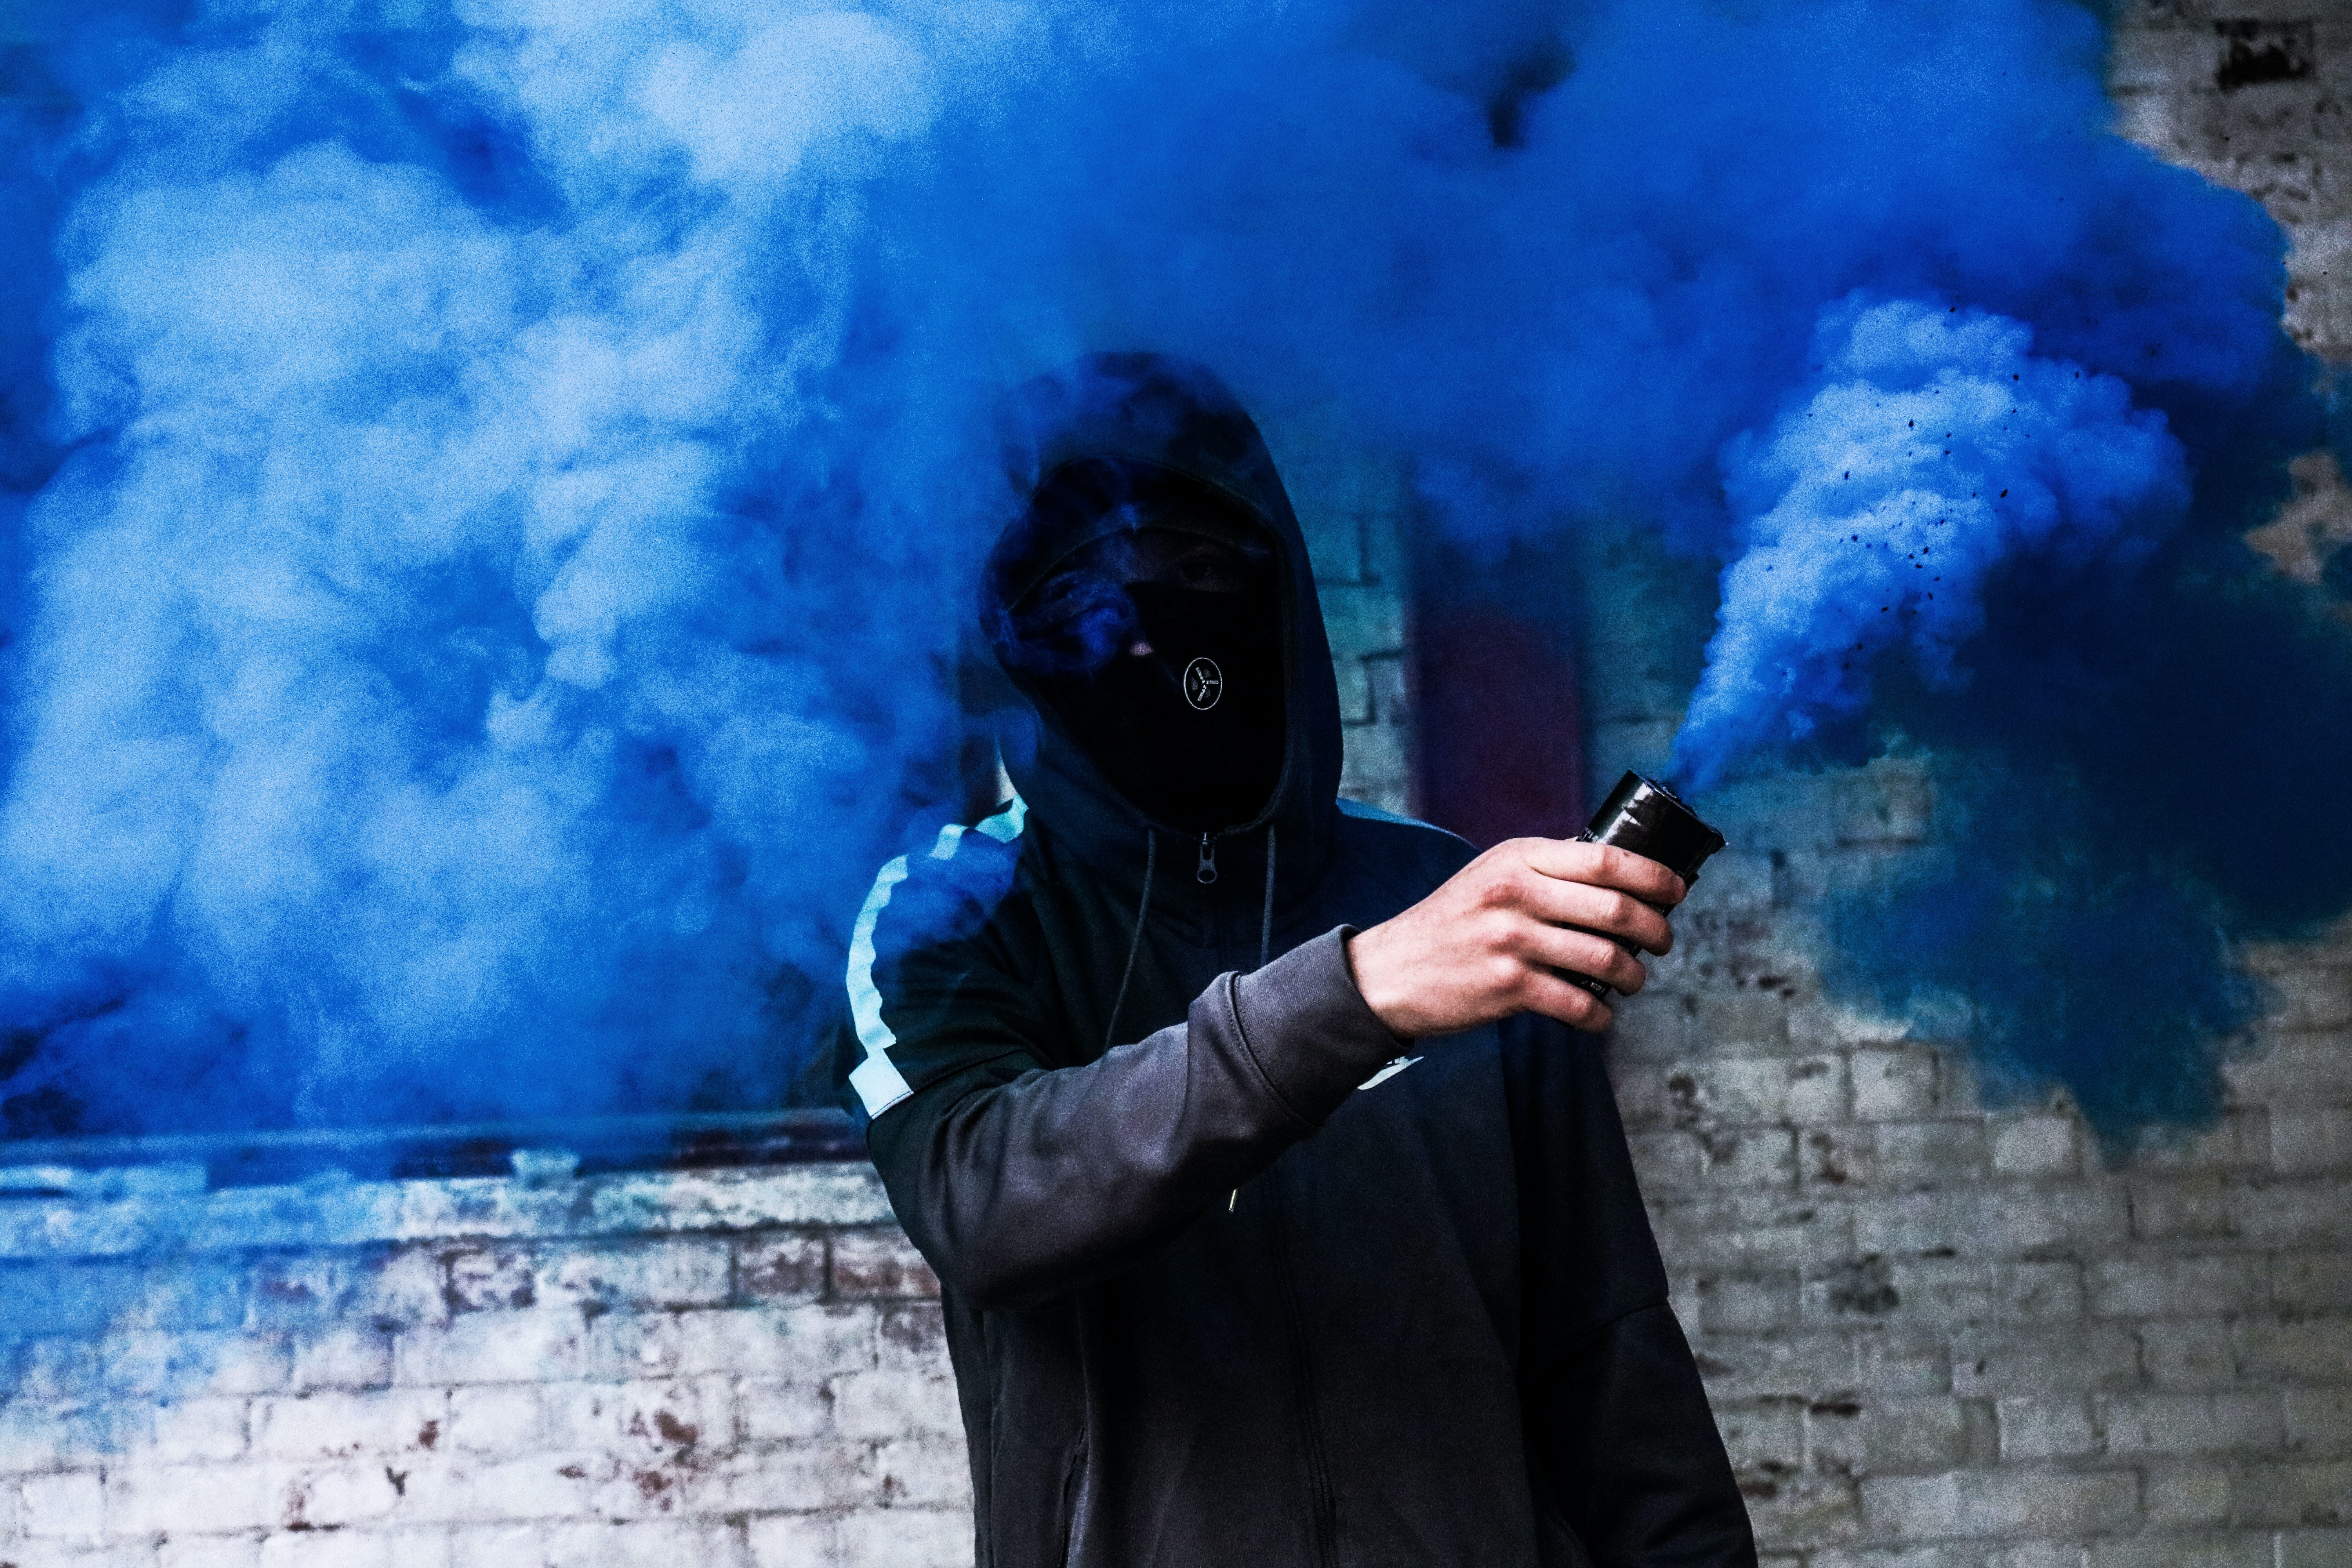 person covered with mask and hoodie using blue smoke